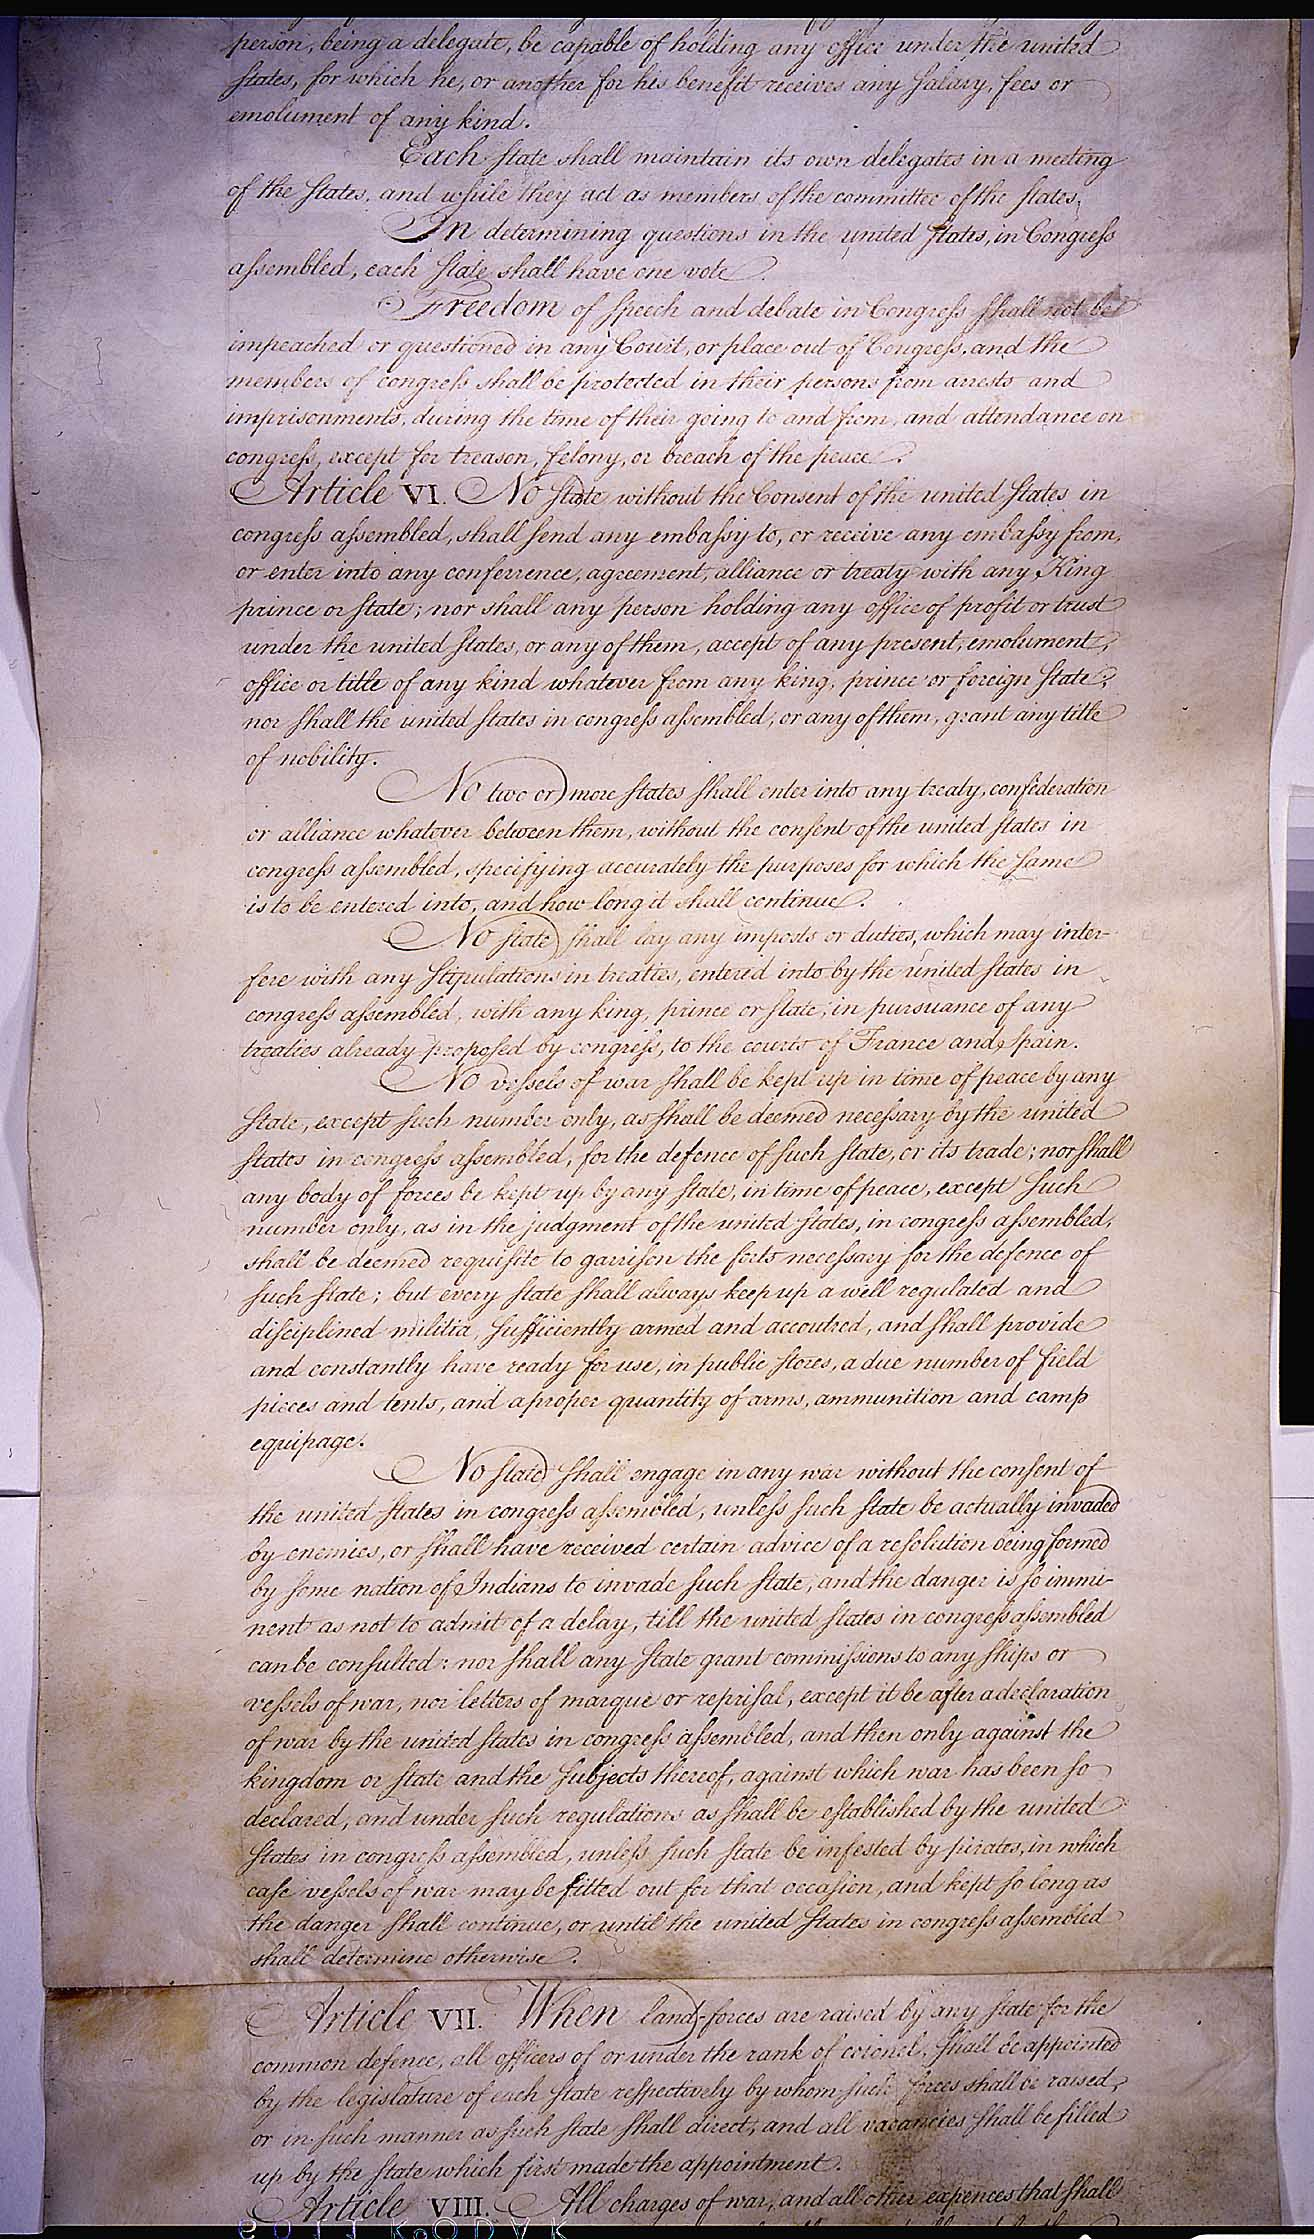 from to the articles of confederation provided the the articles of conferderation ratified in 1781 this was the format for the united